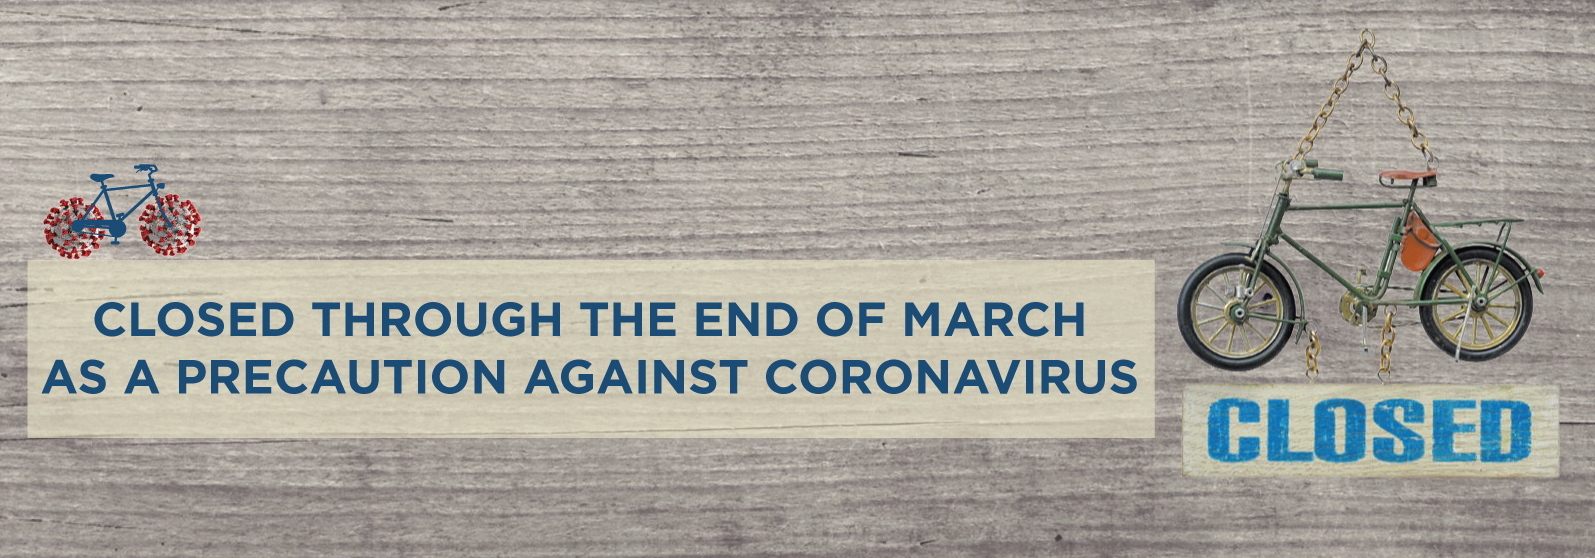 closed through the end of march due to coronavirus